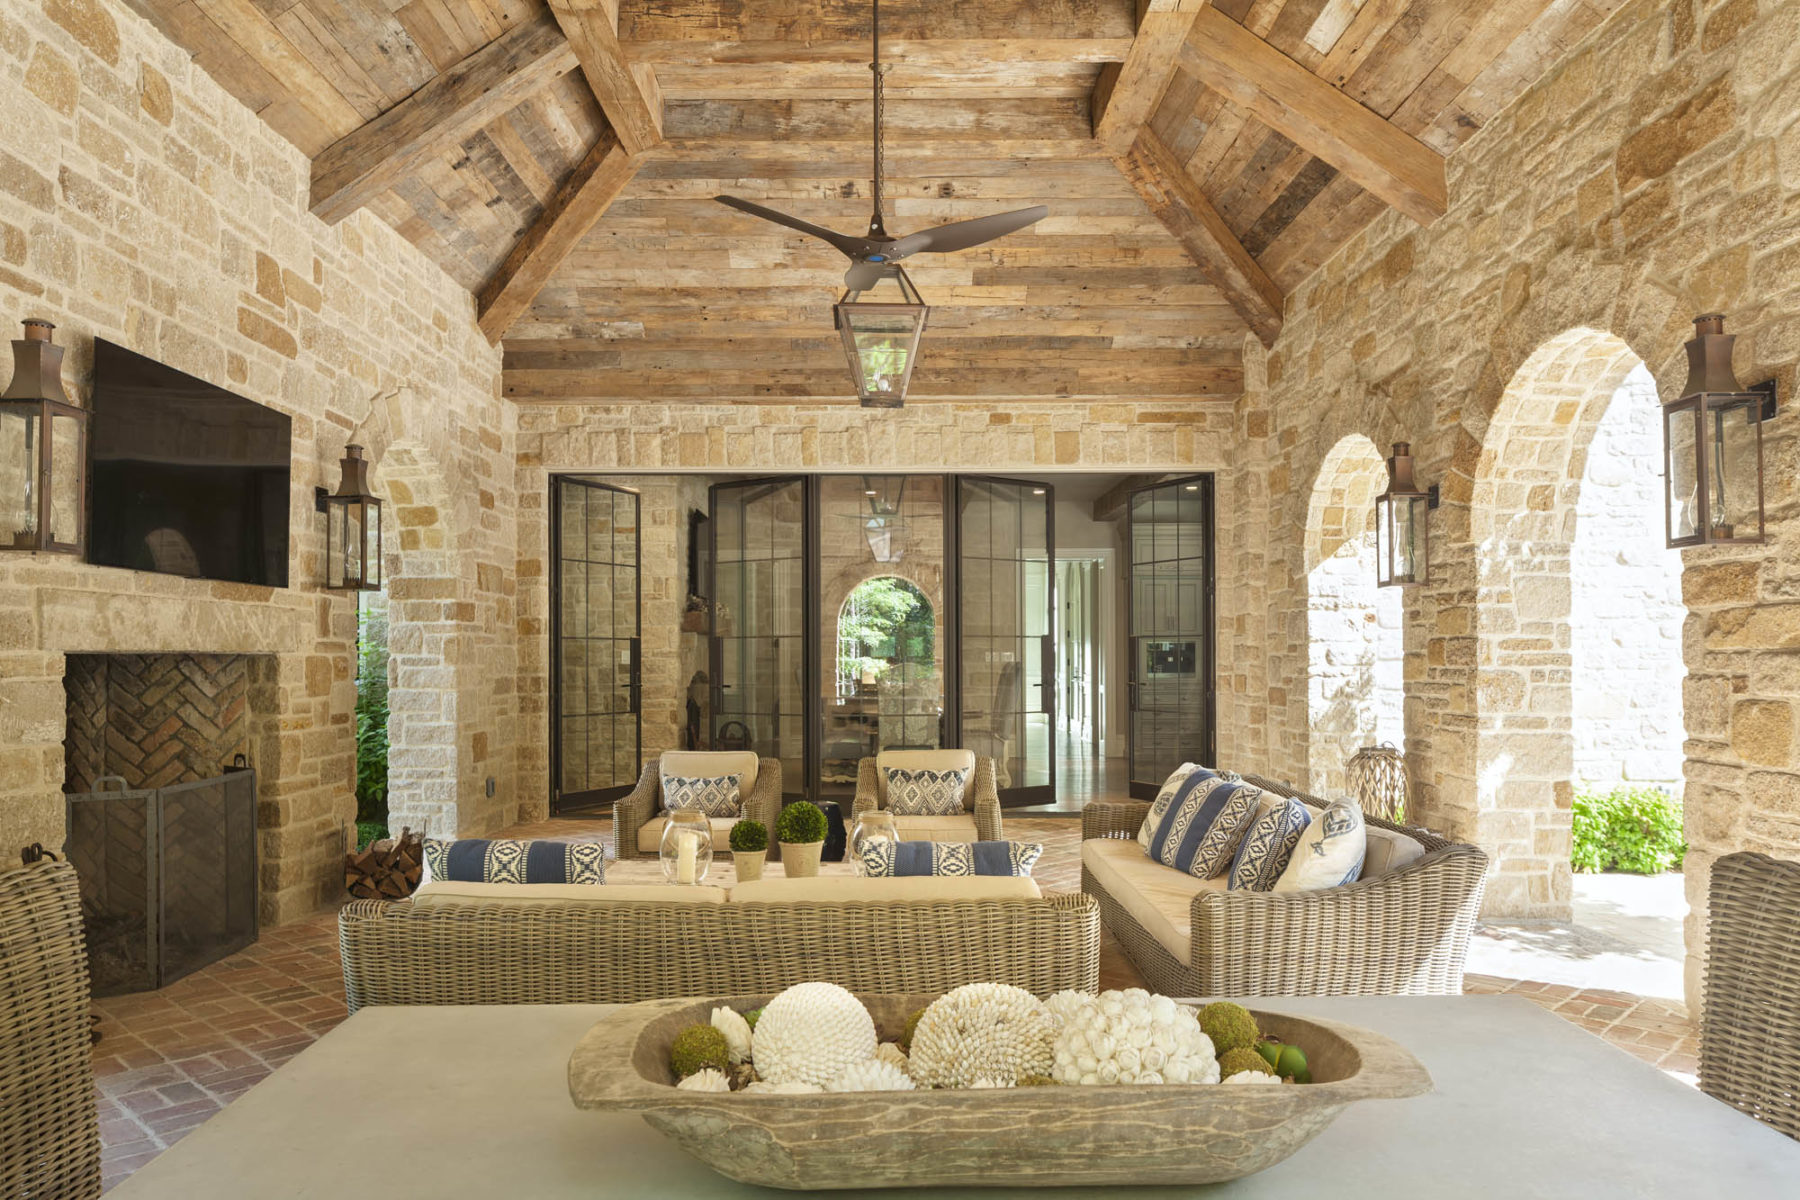 Loggia by Harrison Design has oak timbered vaulted ceiling, stone arches and herringbone brick floor with outdoor fireplace